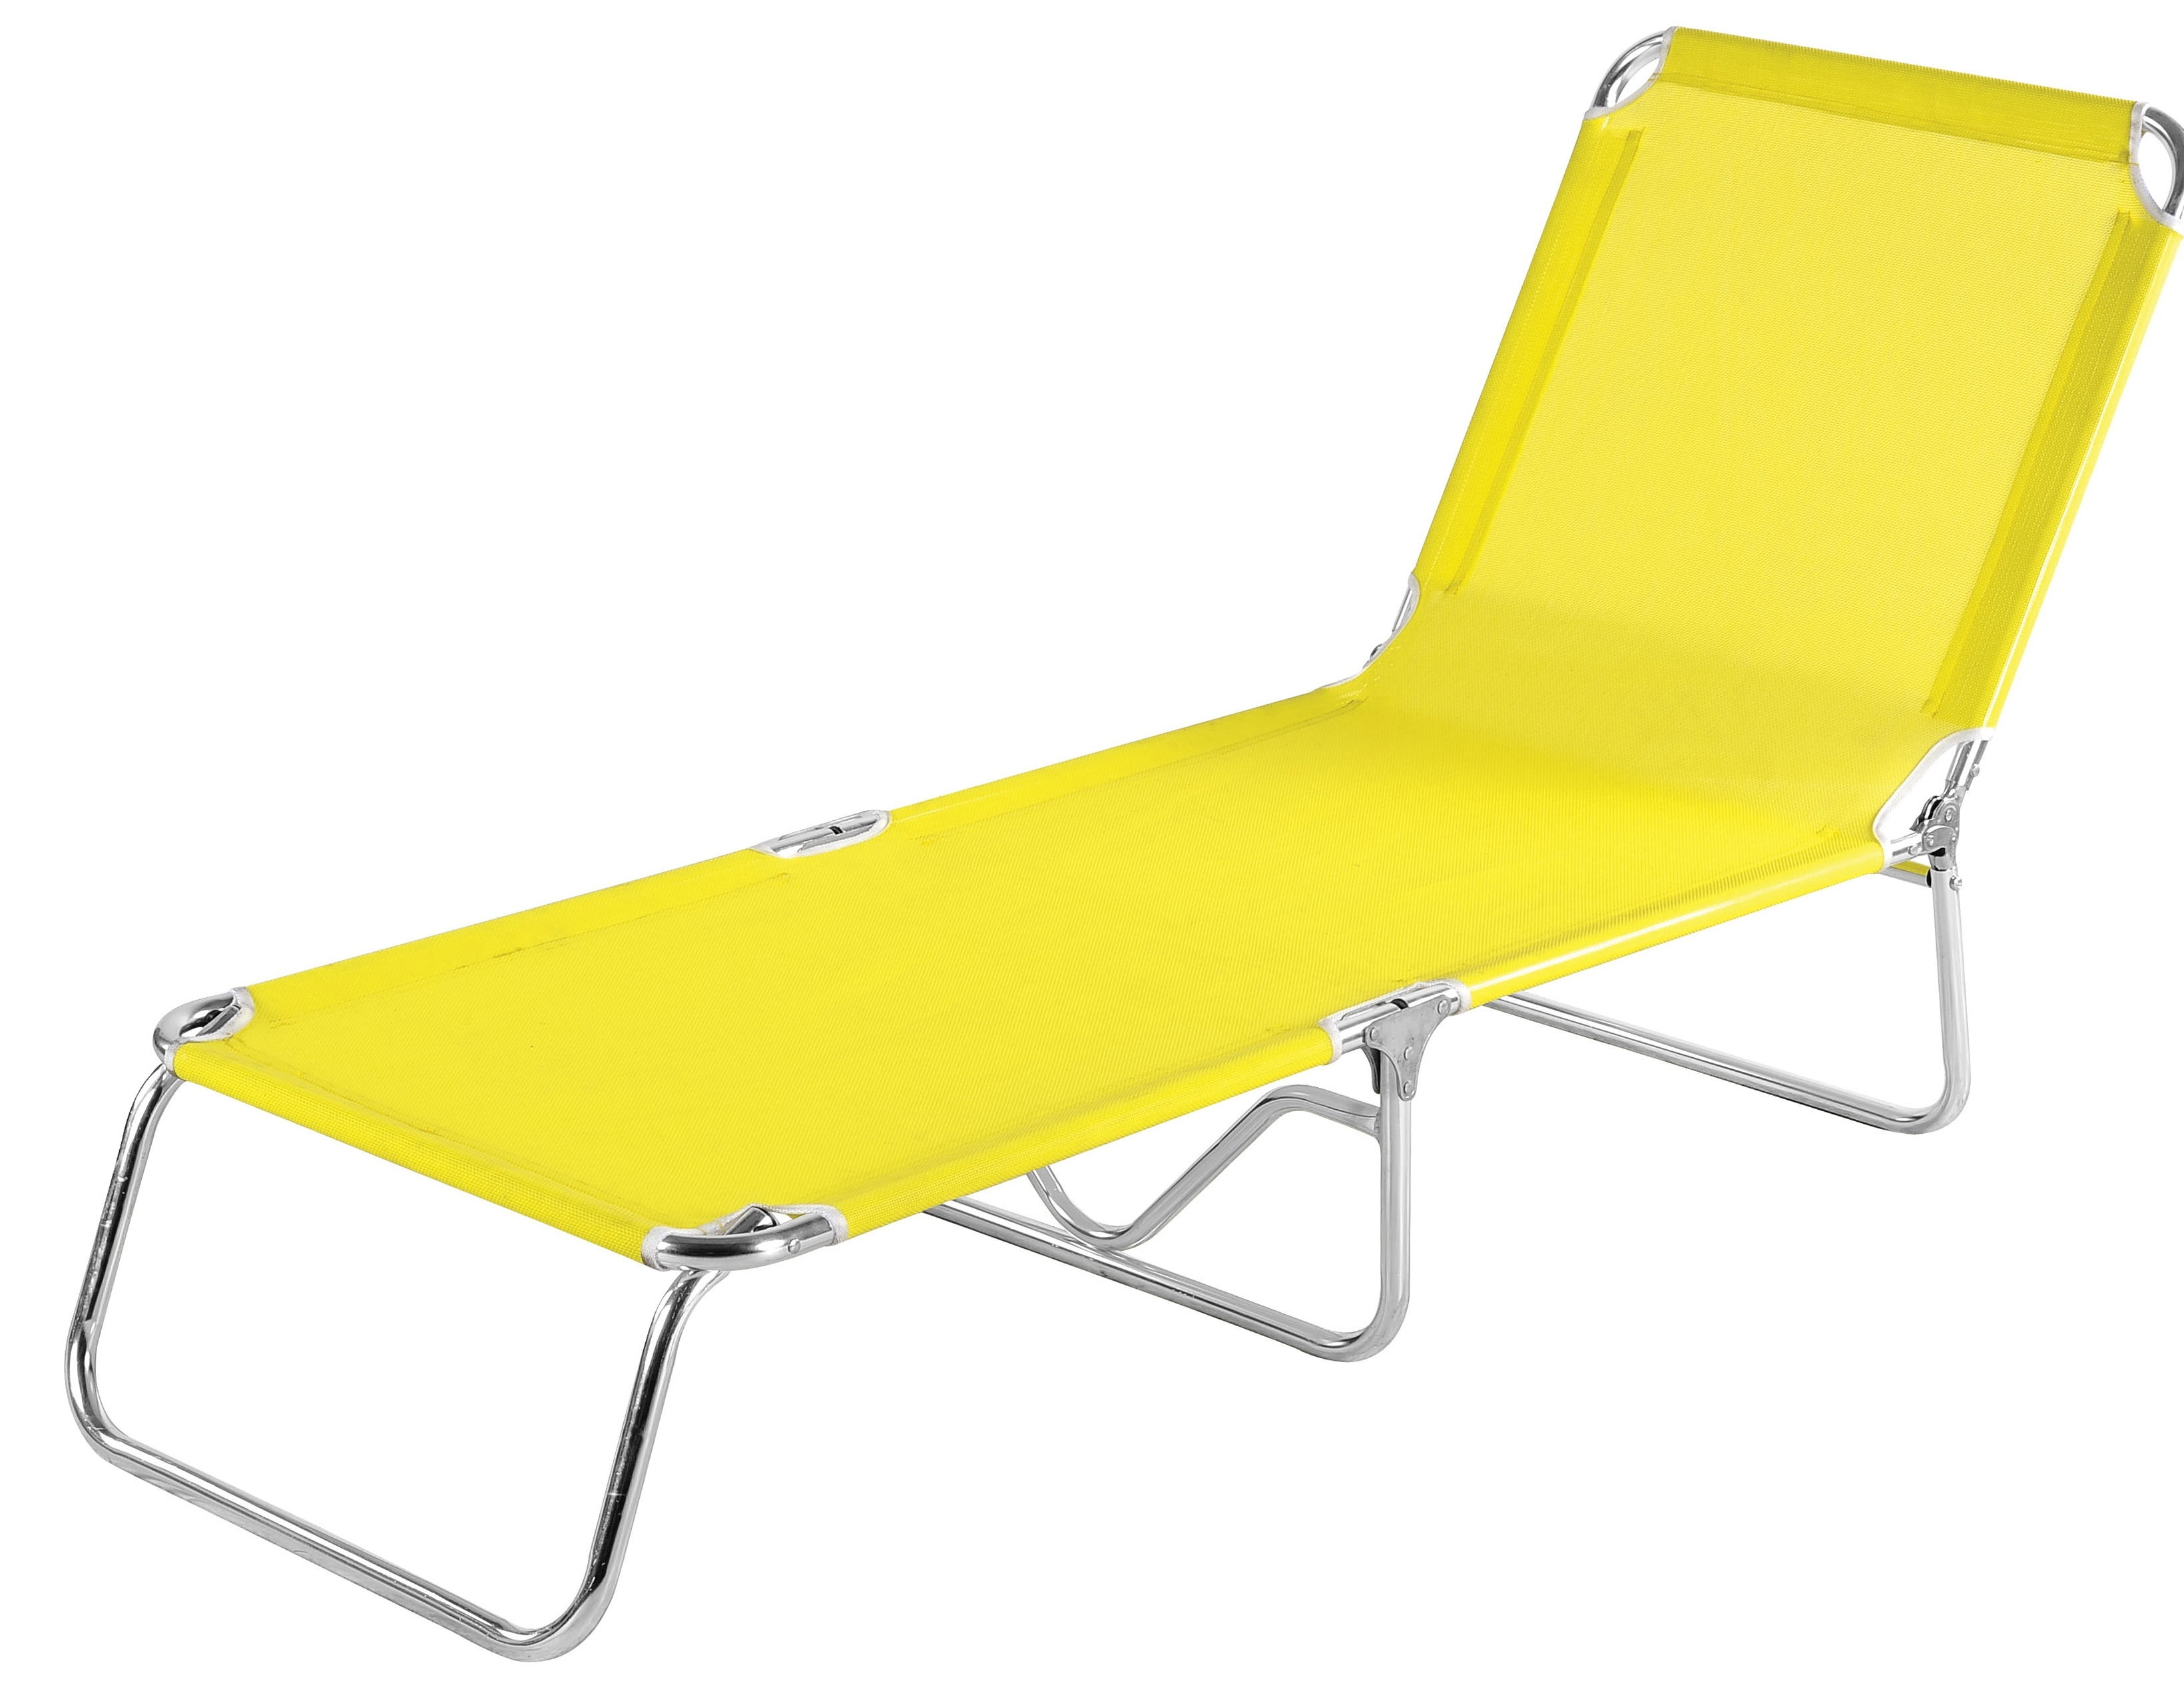 Folding Jelly Chaise Lounge Chair • Lounge Chairs Ideas With Regard To Well Liked Jelly Chaise Lounge Chairs (View 4 of 15)